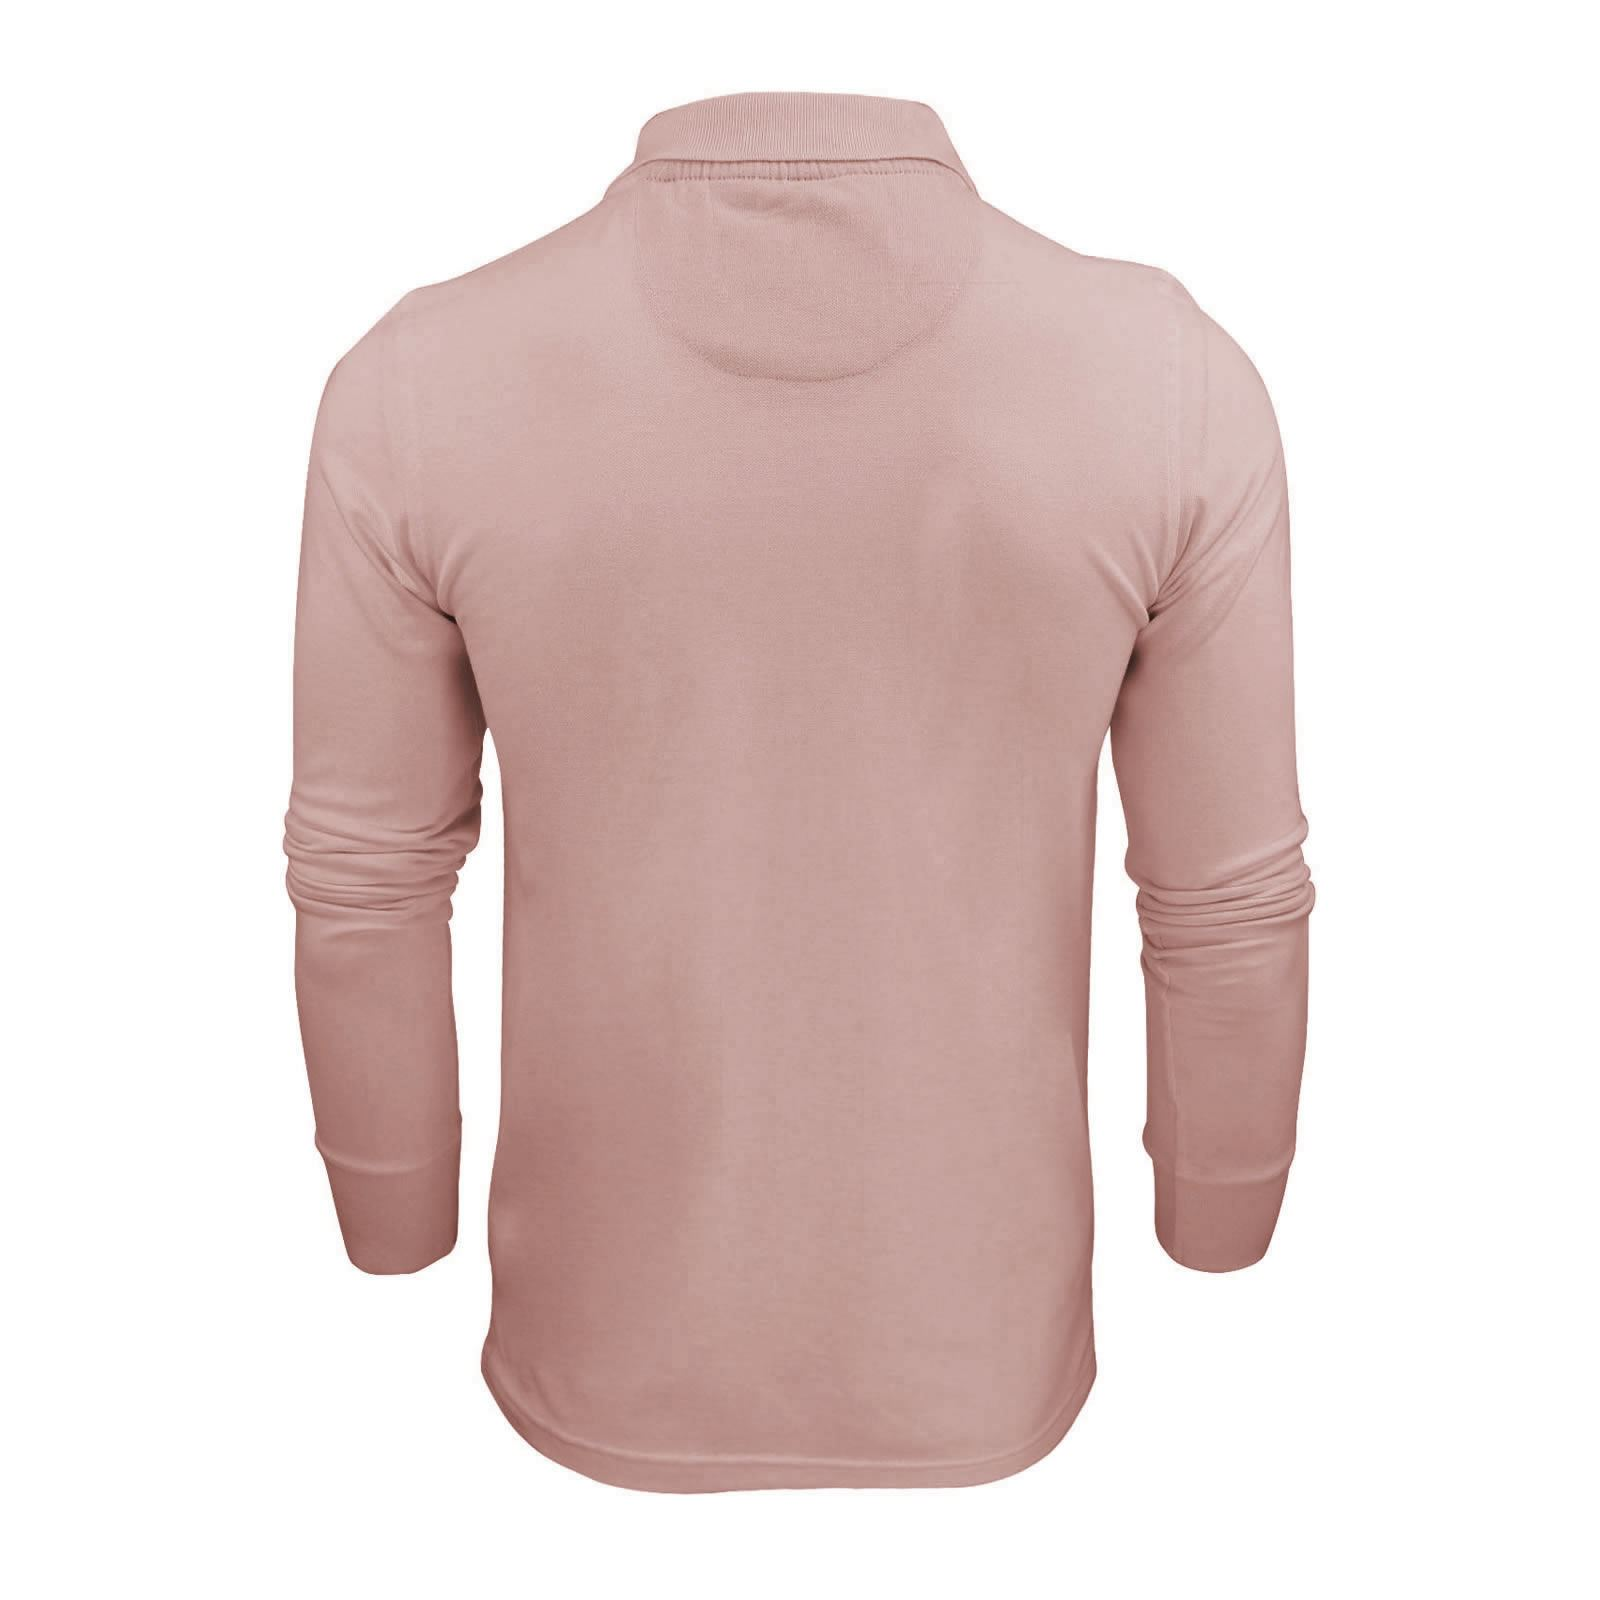 Mens-Polo-T-Shirt-Brave-Soul-Lincoln-Long-Sleeve-Cotton-Pique-Casual-Top thumbnail 33